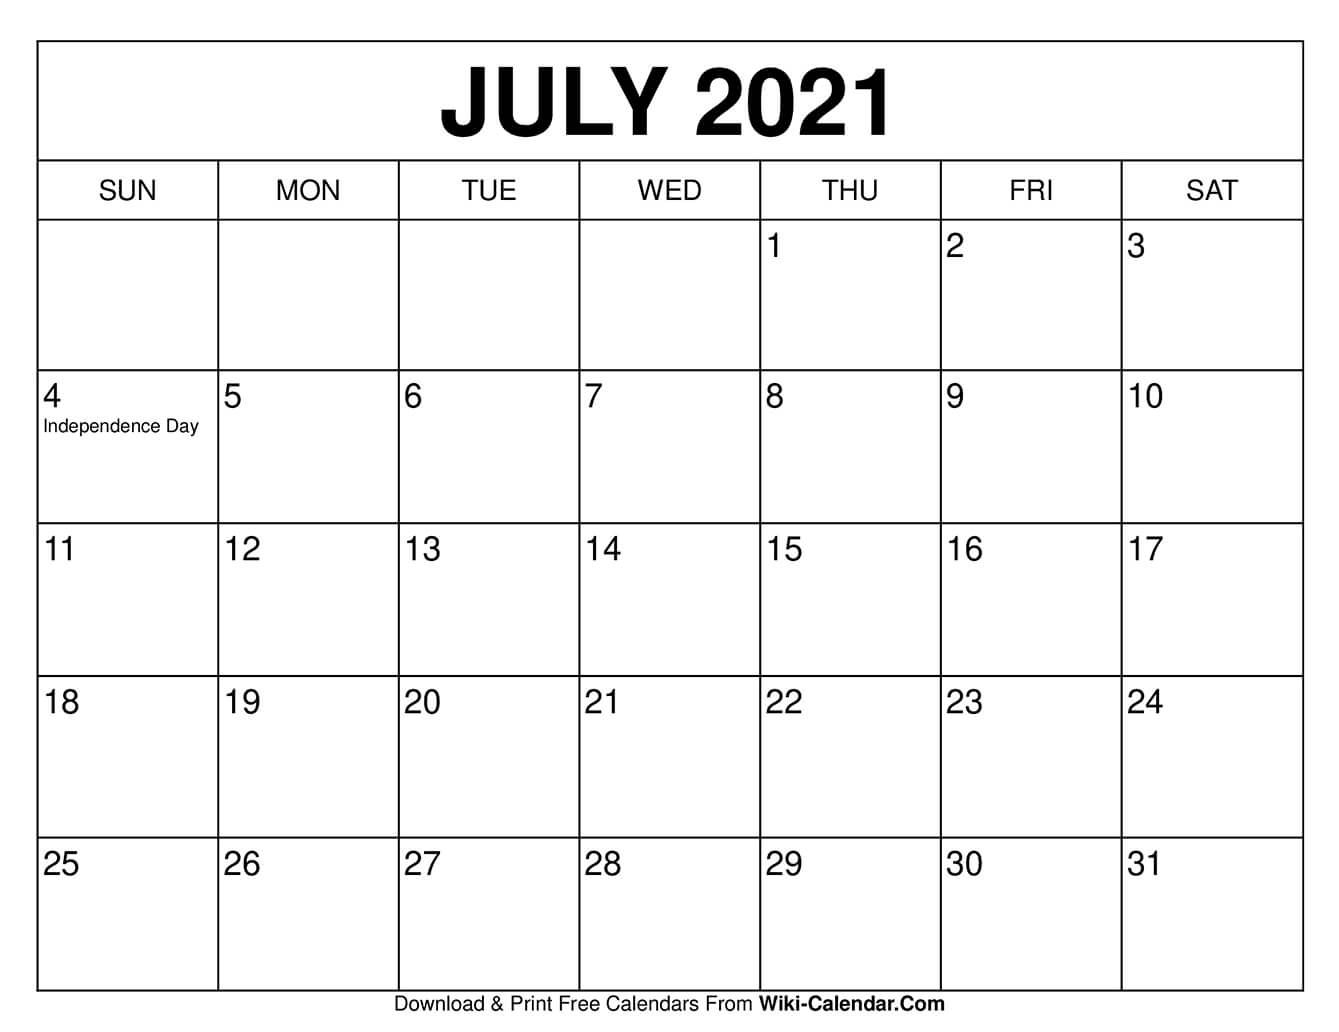 July 2021 Calendar In 2020 | Free Calendars To Print Free